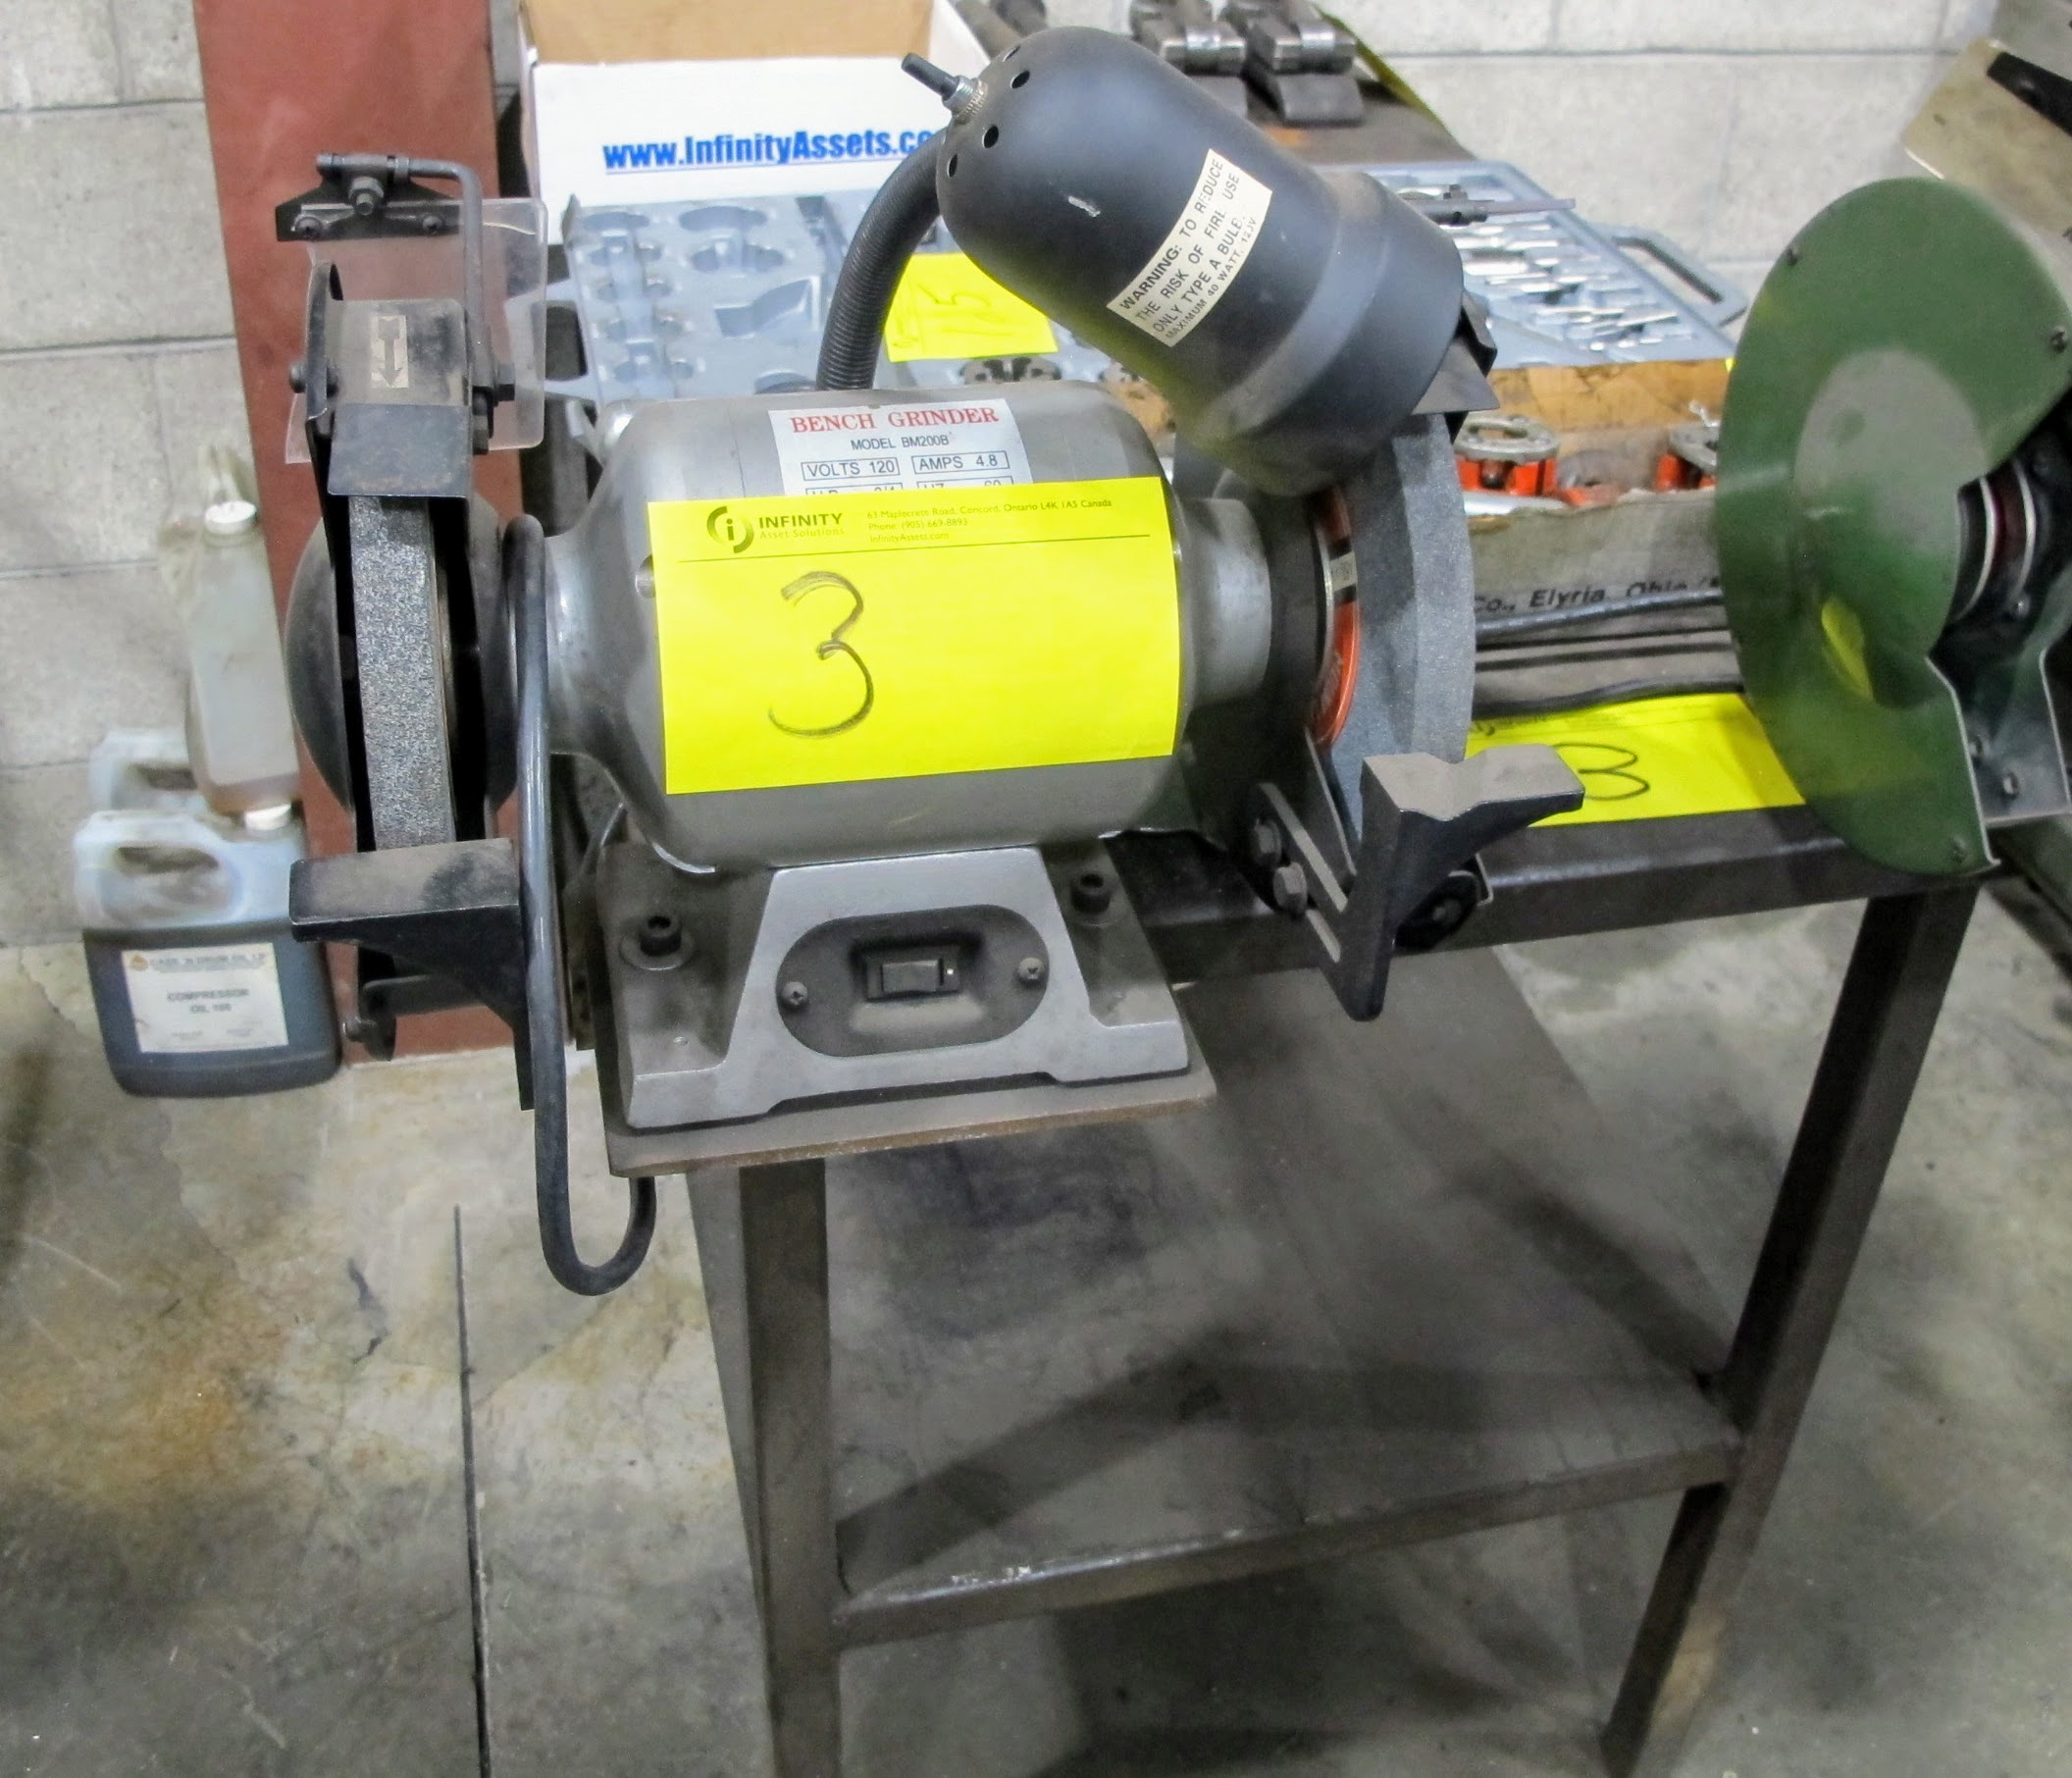 """TOOLEY 8"""" BENCH GRINDER/POLISHER, 200B 8"""" BENCH GRINDER W/METAL TABLE, 26"""" X 48"""" W/1/2"""" PLATE - Image 2 of 2"""